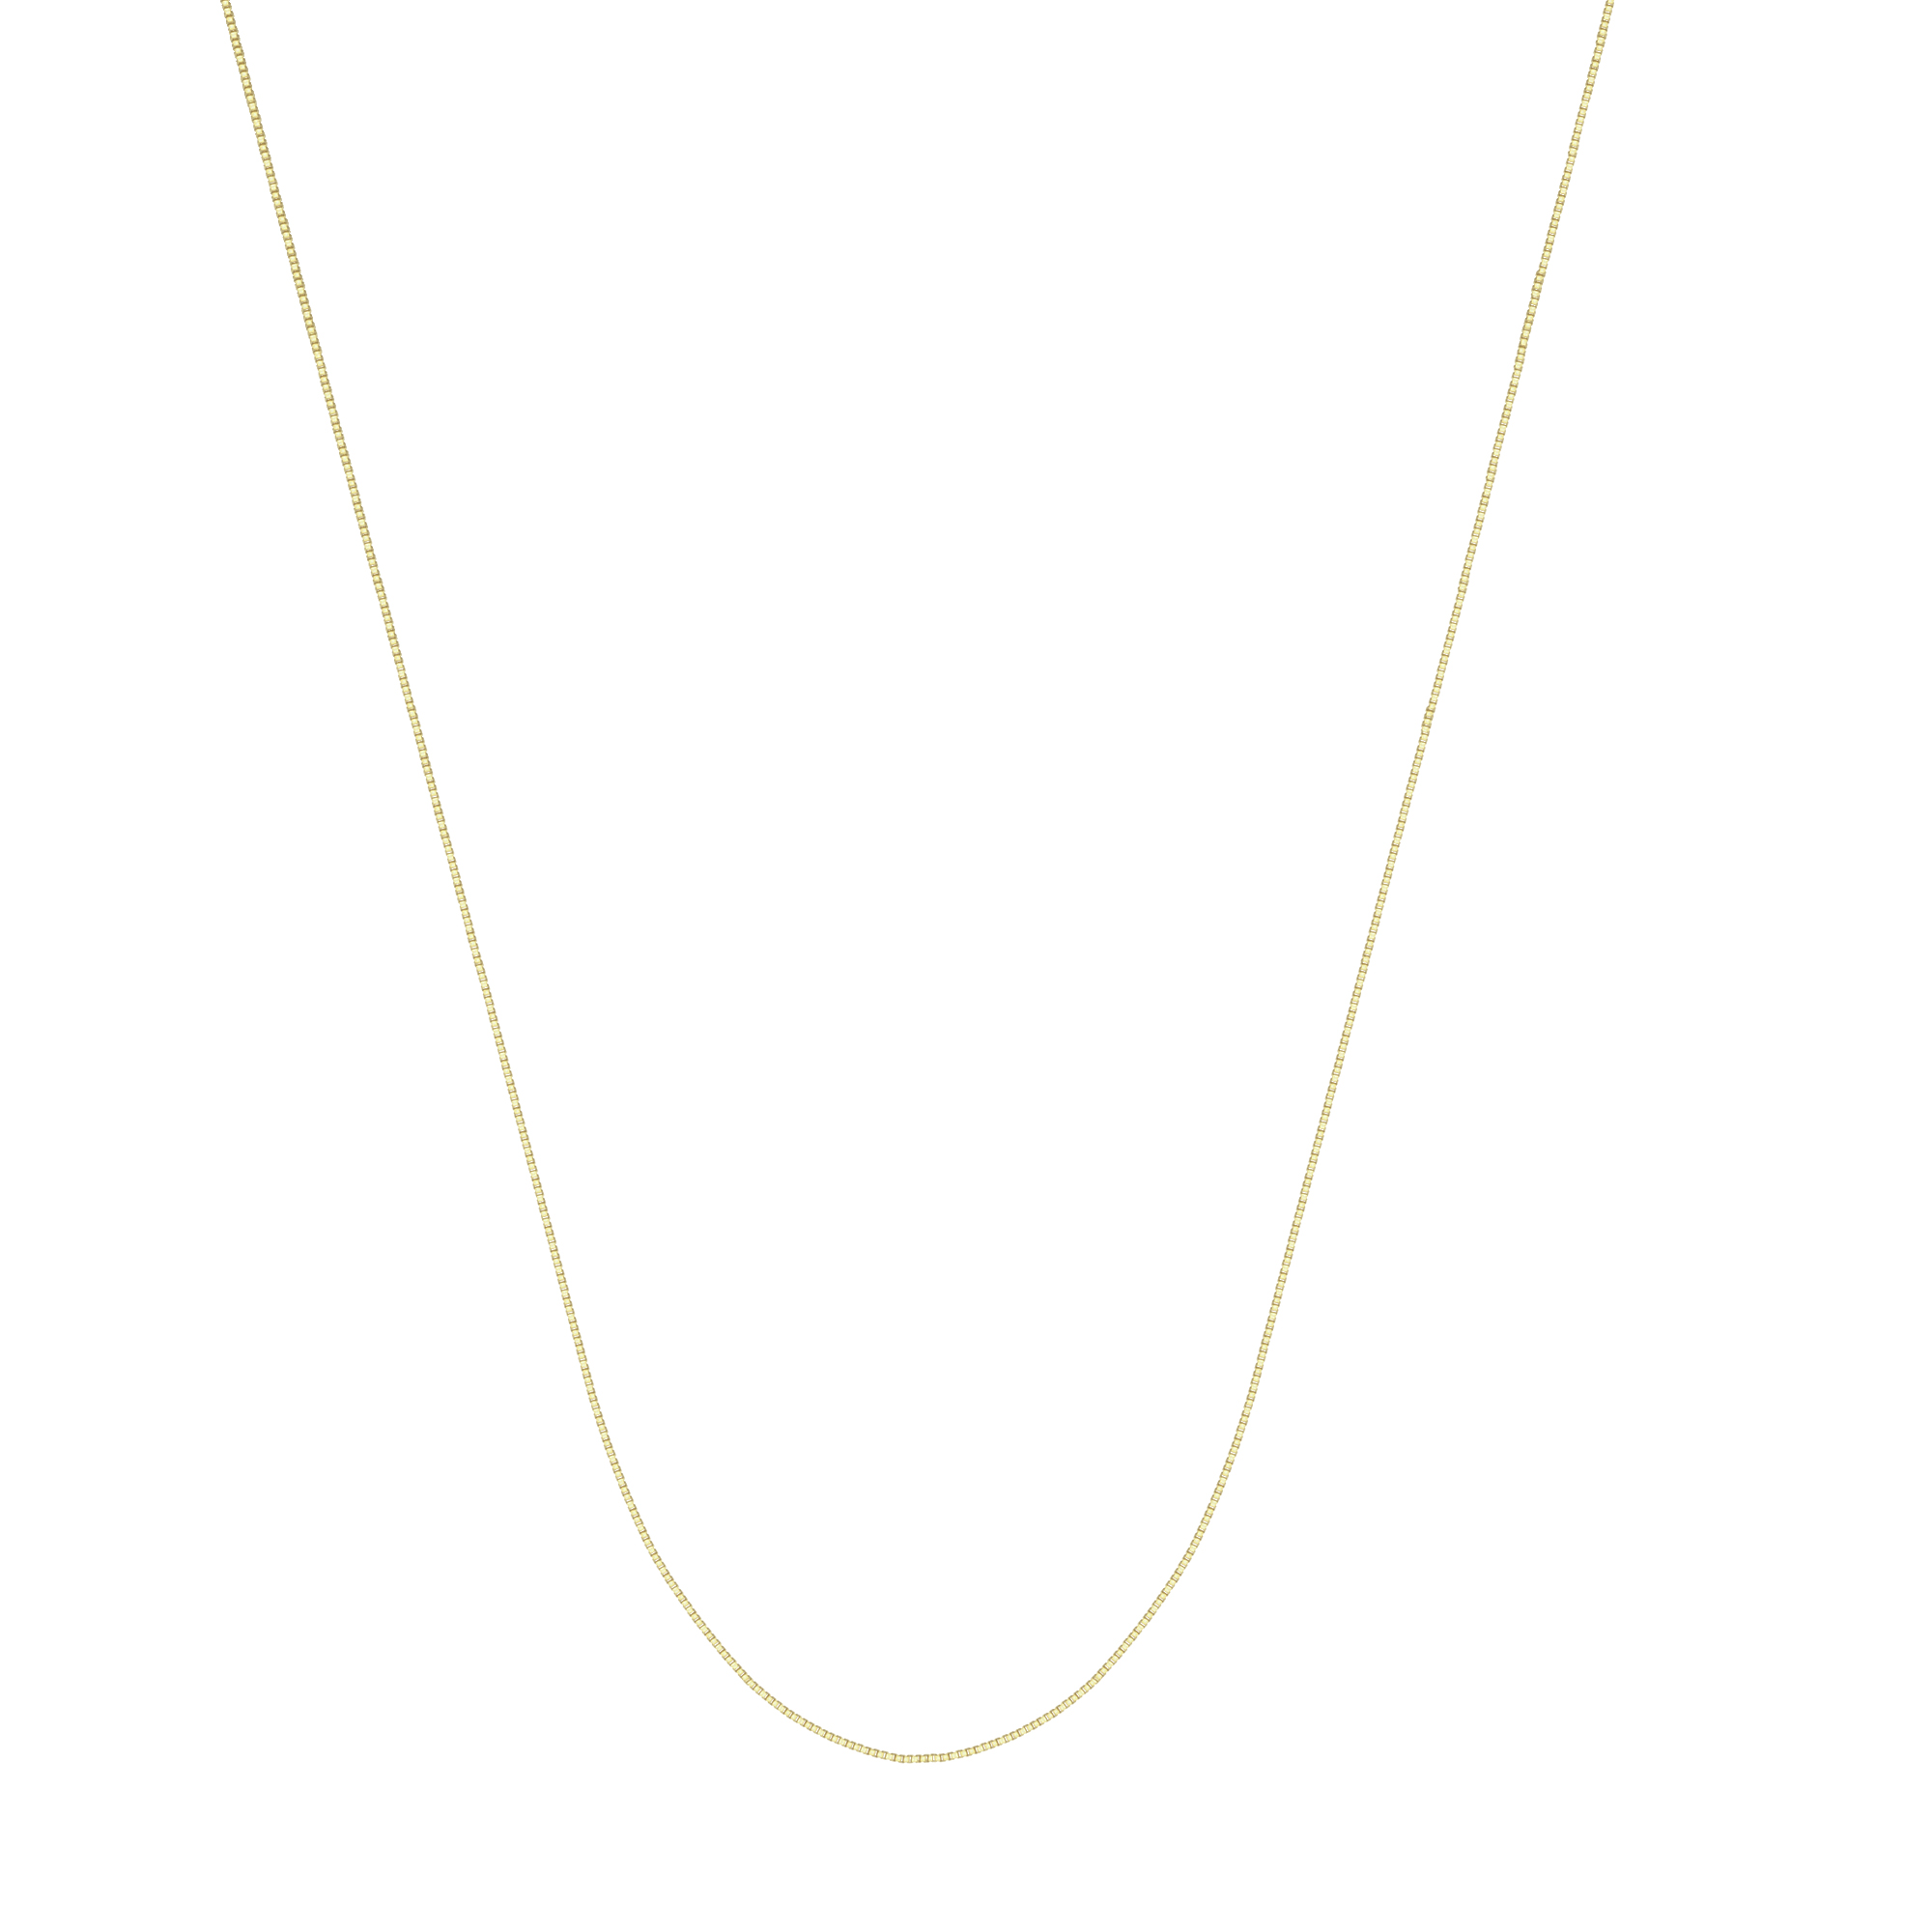 Box Chain, 14Kt Gold Box Chain With Lobster Lock / 20